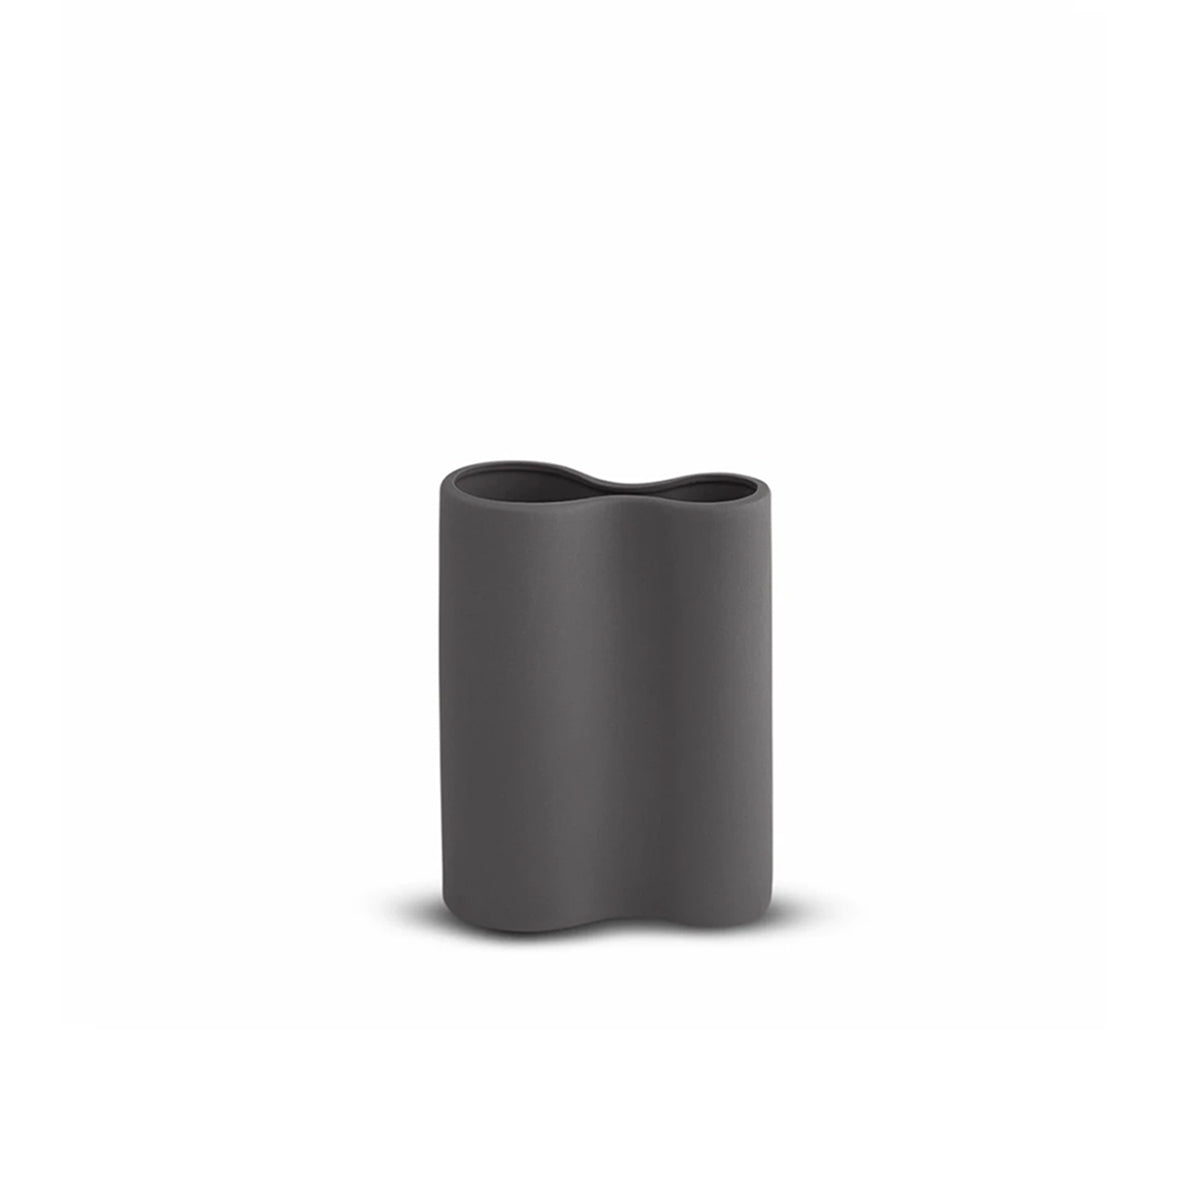 Smooth Infinity Vase Small Charcoal